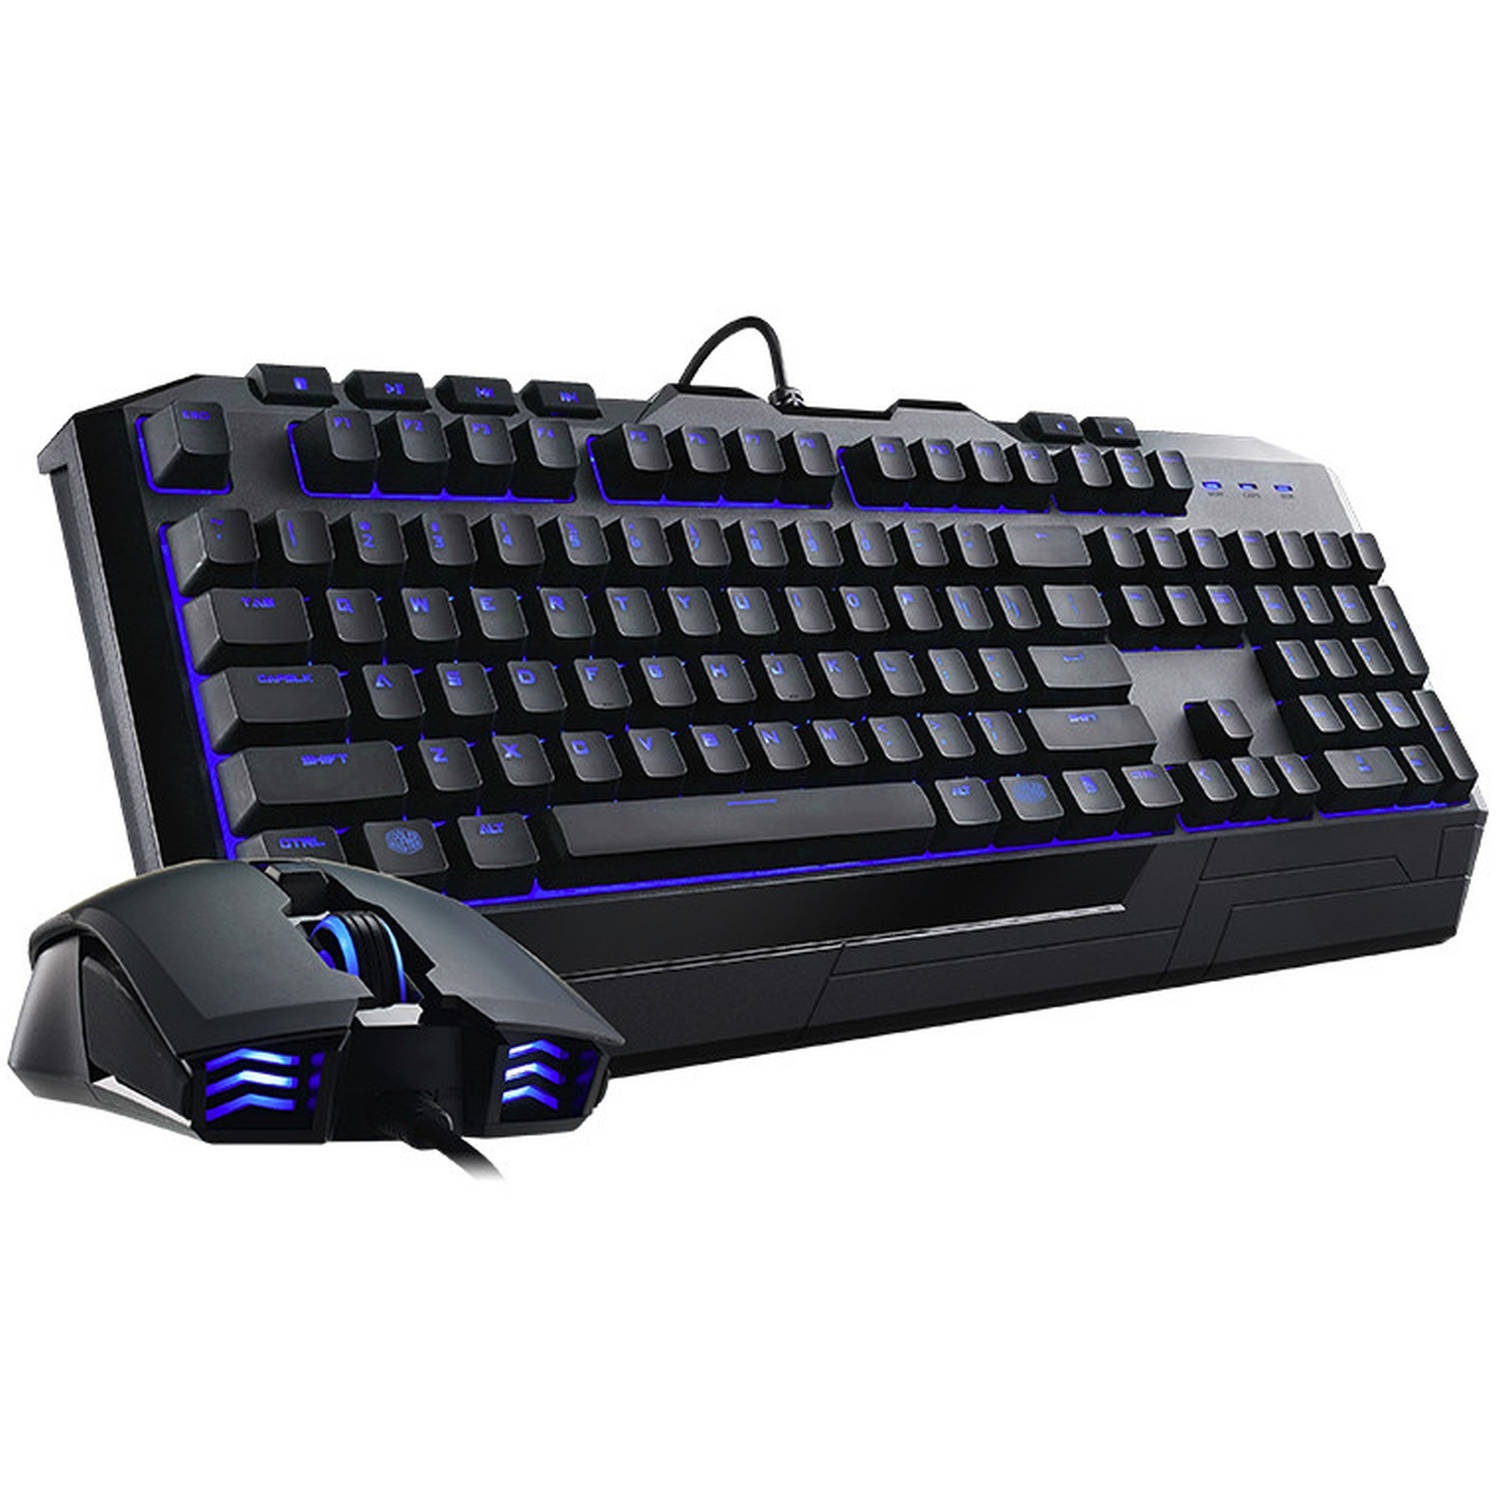 Cooler Master Devastator II SGB-3030-KKMF1-US Gaming Keyboard and Mouse Bundle, Blue LED